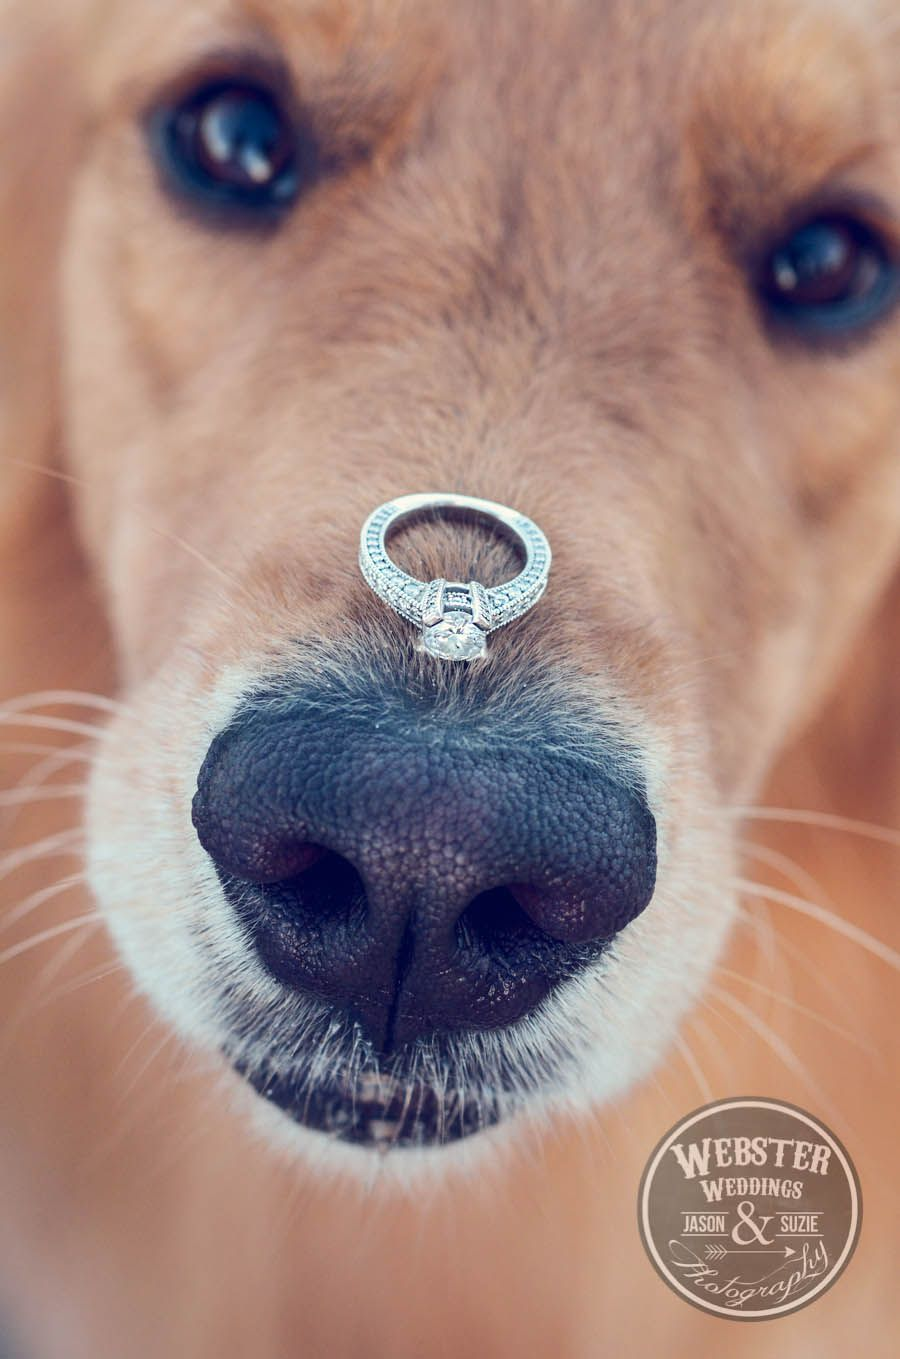 Family Dog As Ring Bearer Including The Dog In Your Wedding I Would Cry If I Saw This Tears Of J With Images Getting Ready Wedding Engagement Pictures Wedding Photos